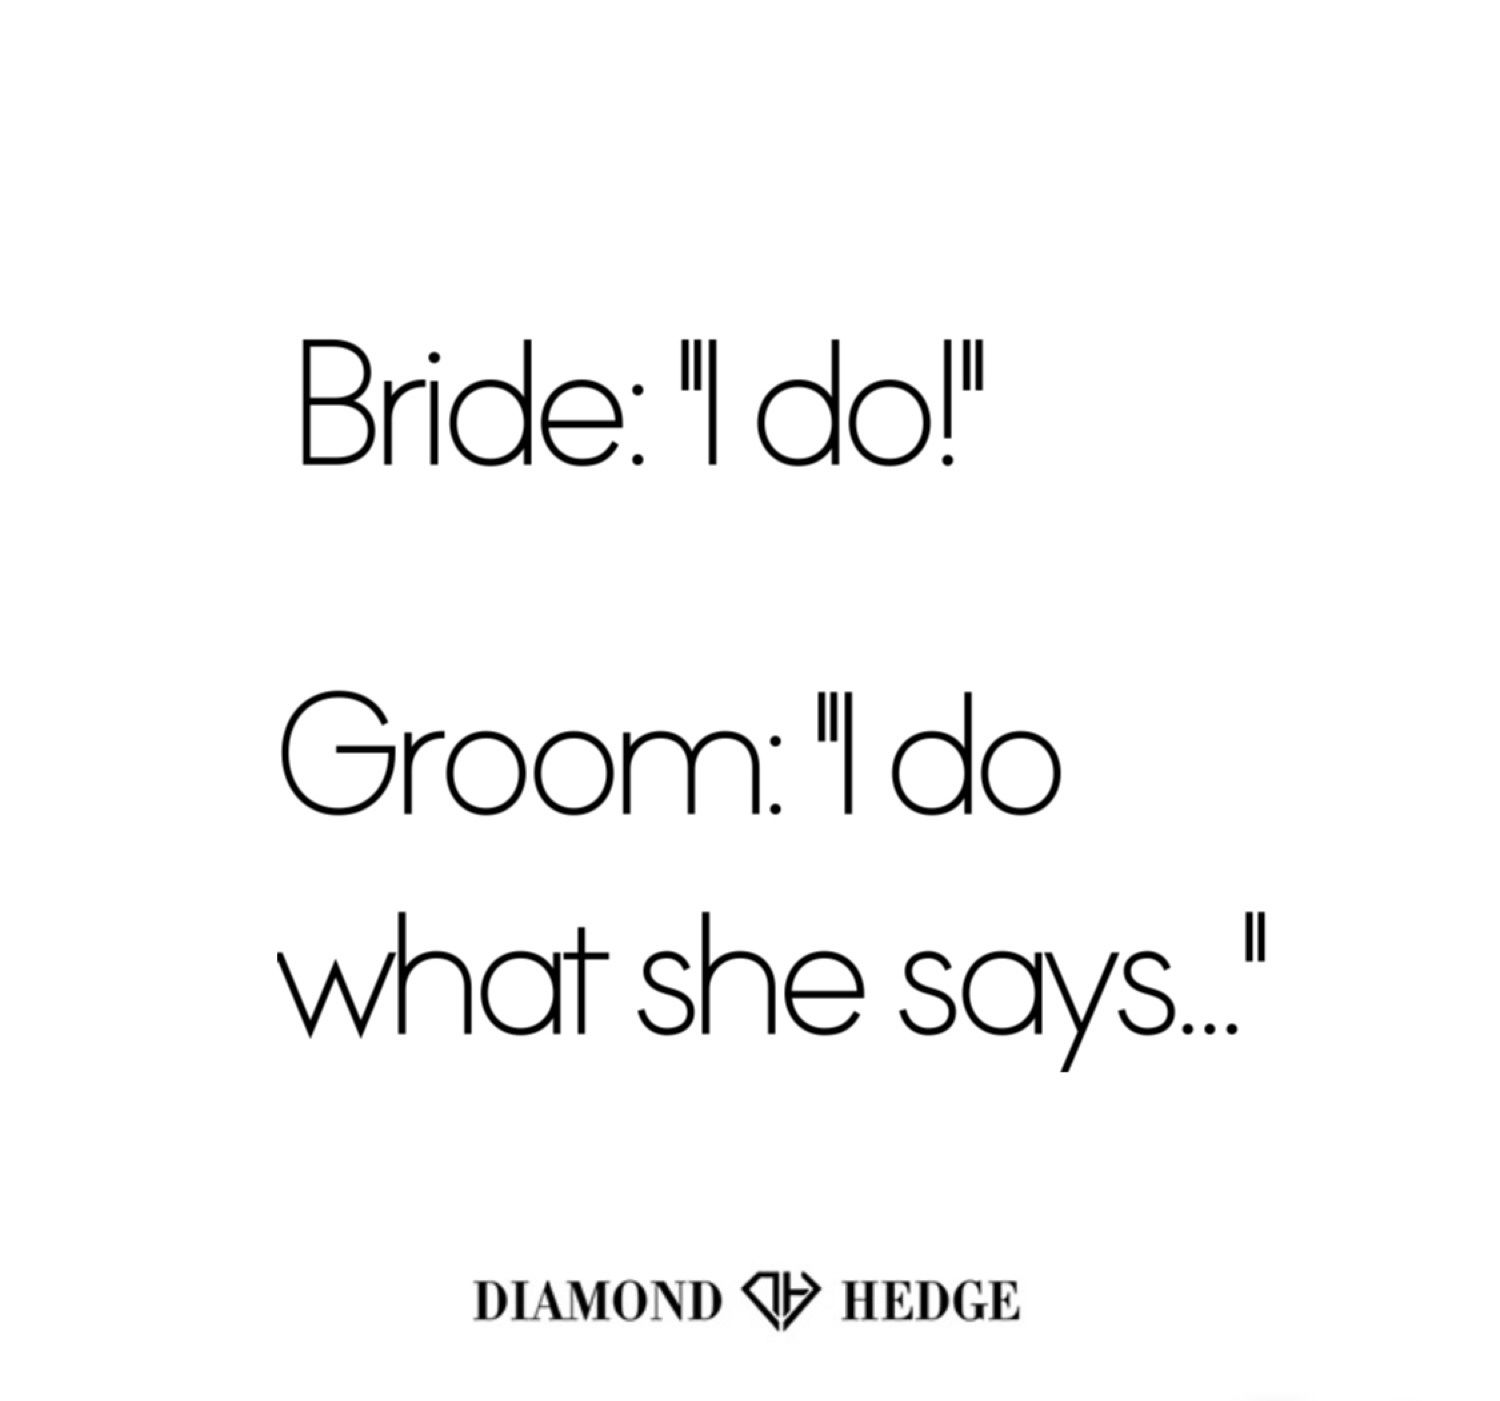 Funny Wedding Quotes Wedding Quotes Funny Marriage Quotes Funny Wedding Quotes